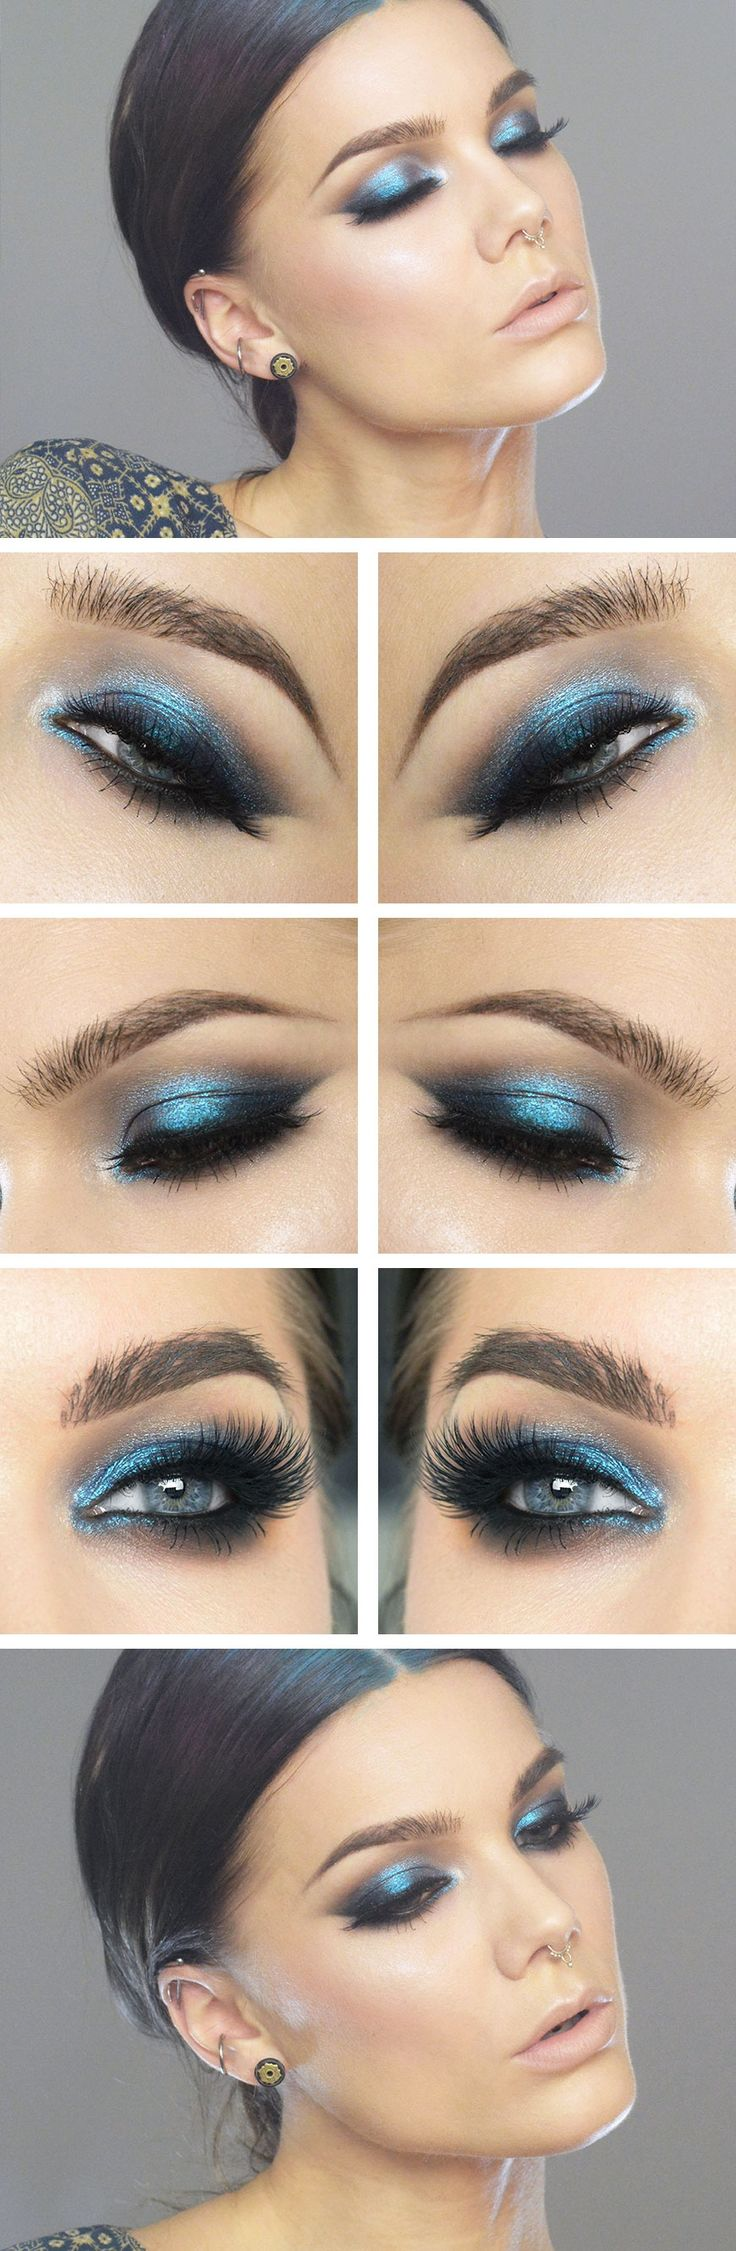 Another blue eyeshadow look that is a little brighter and bolder. While I'm not entirely sure on the depth of the colour as it is quite dark, I do like the smoky look.